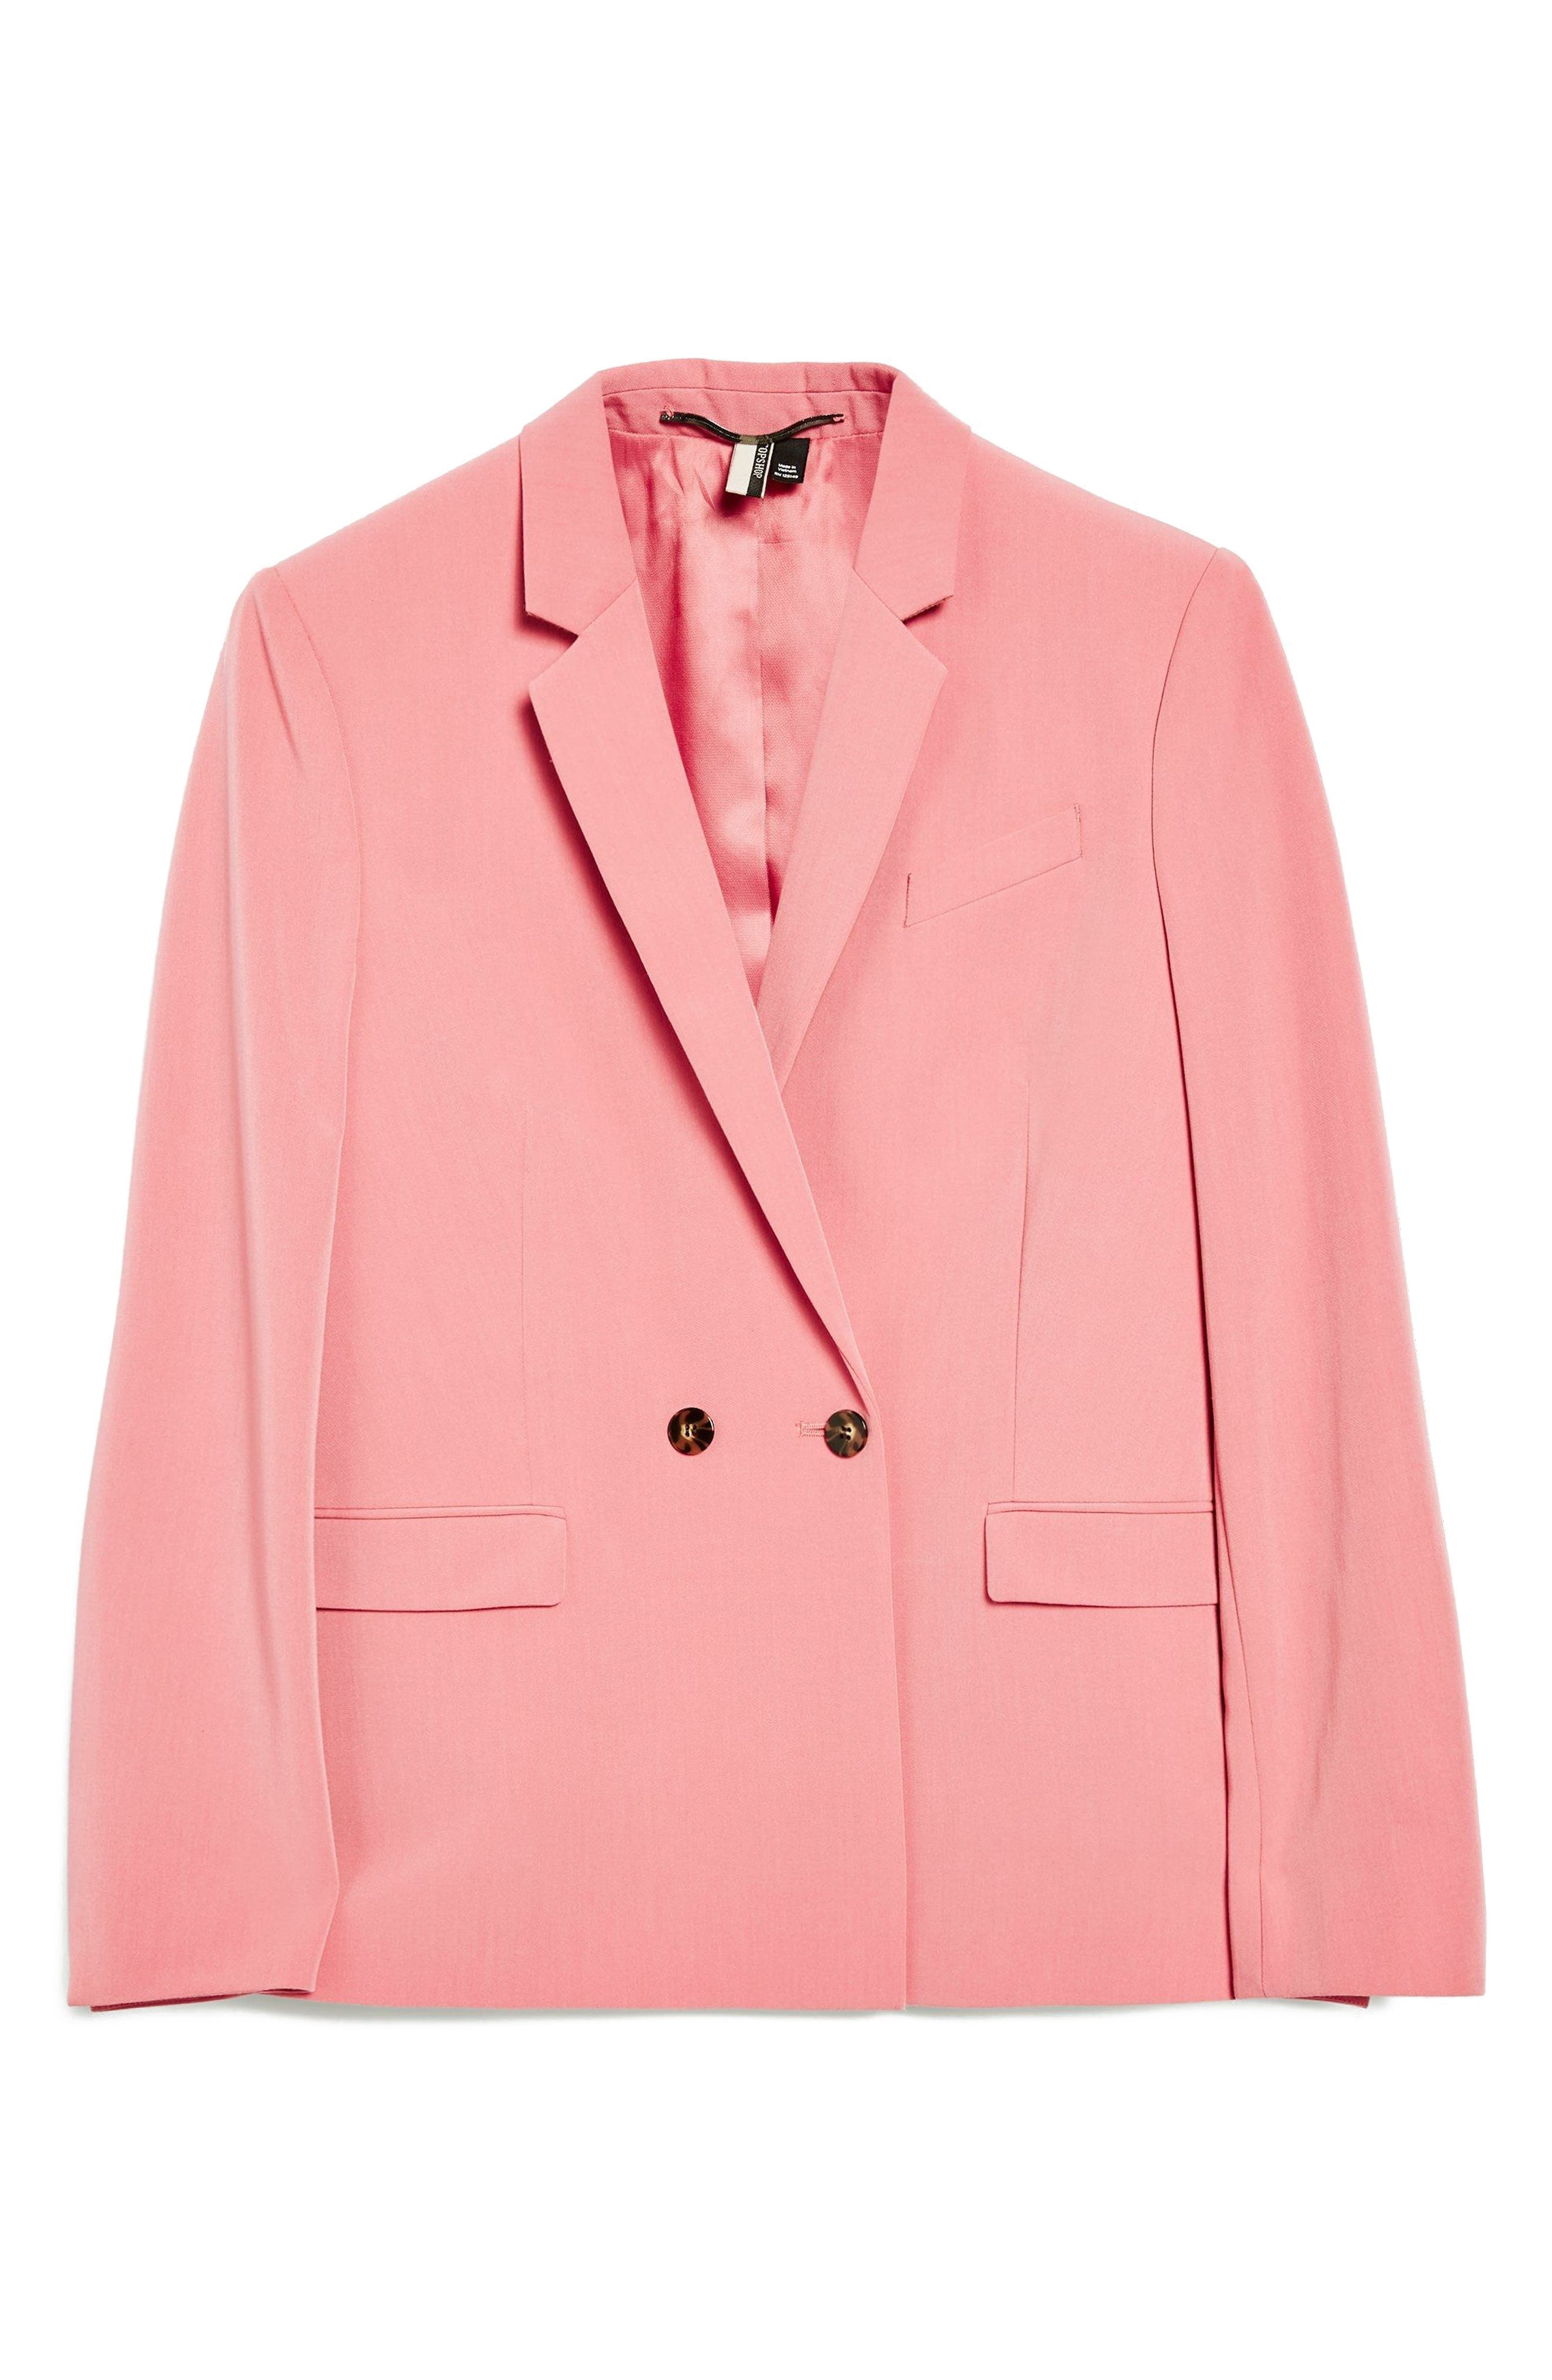 Longline Double Breasted Button Suit Jacket,                             Alternate thumbnail 3, color,                             650